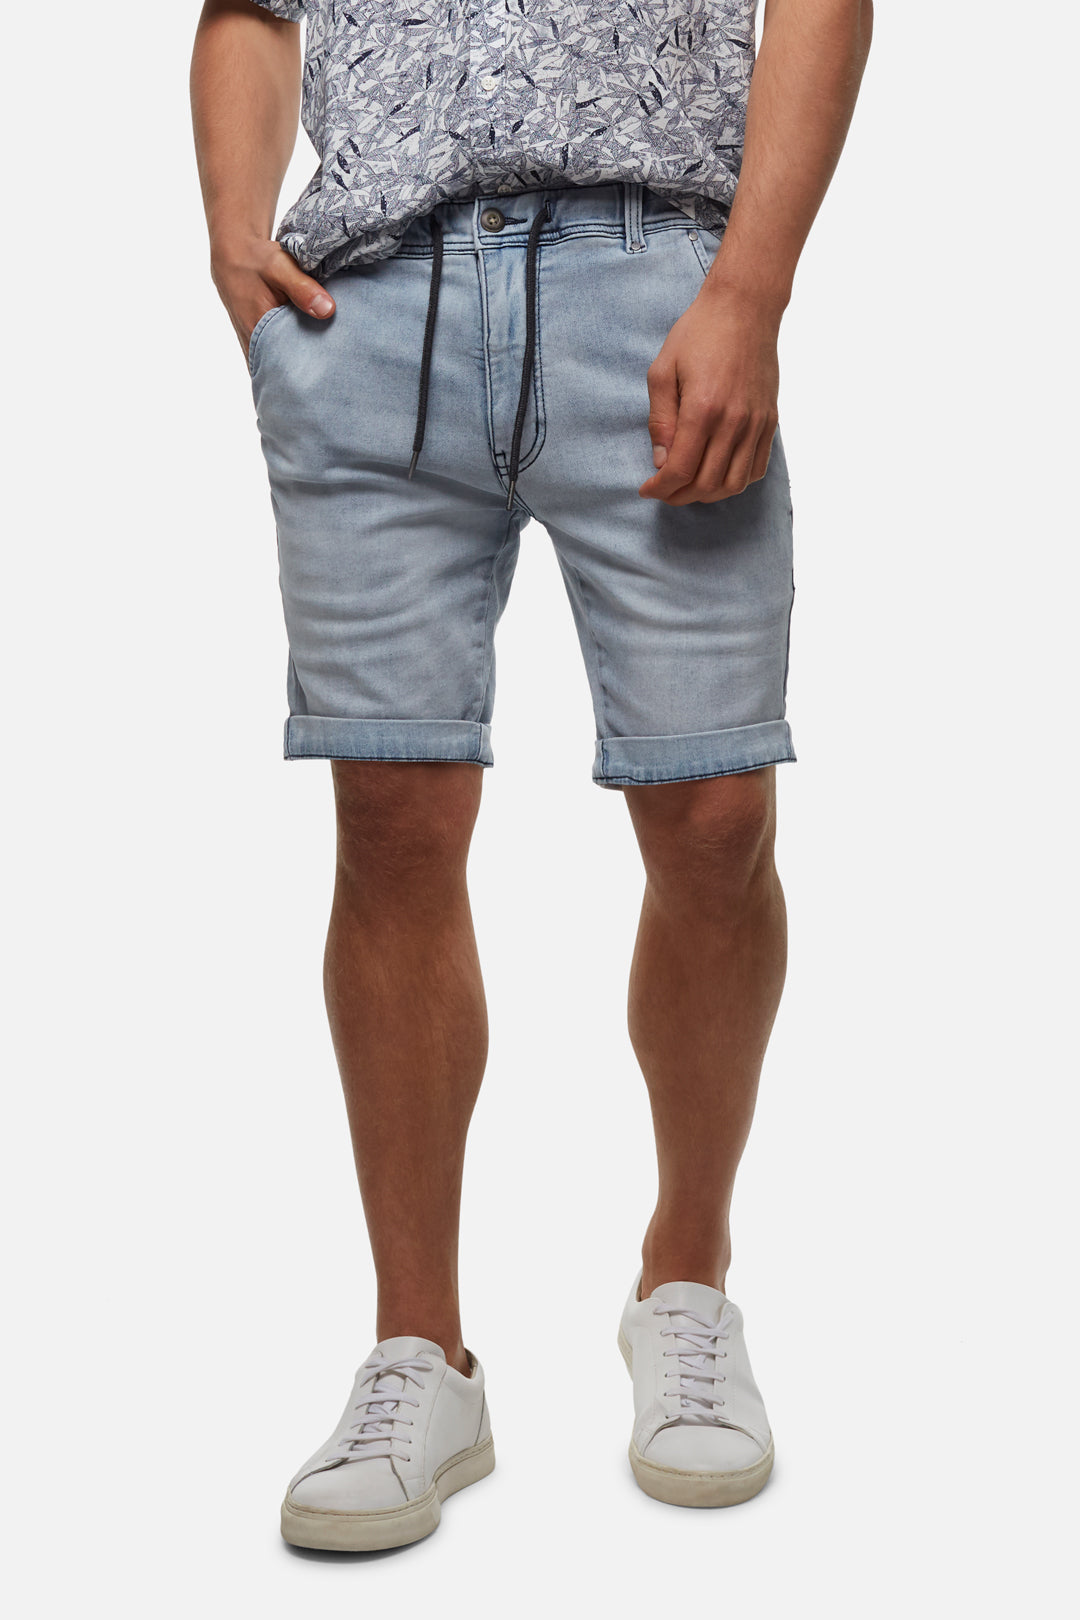 The Drifter Denim Short - Siberian